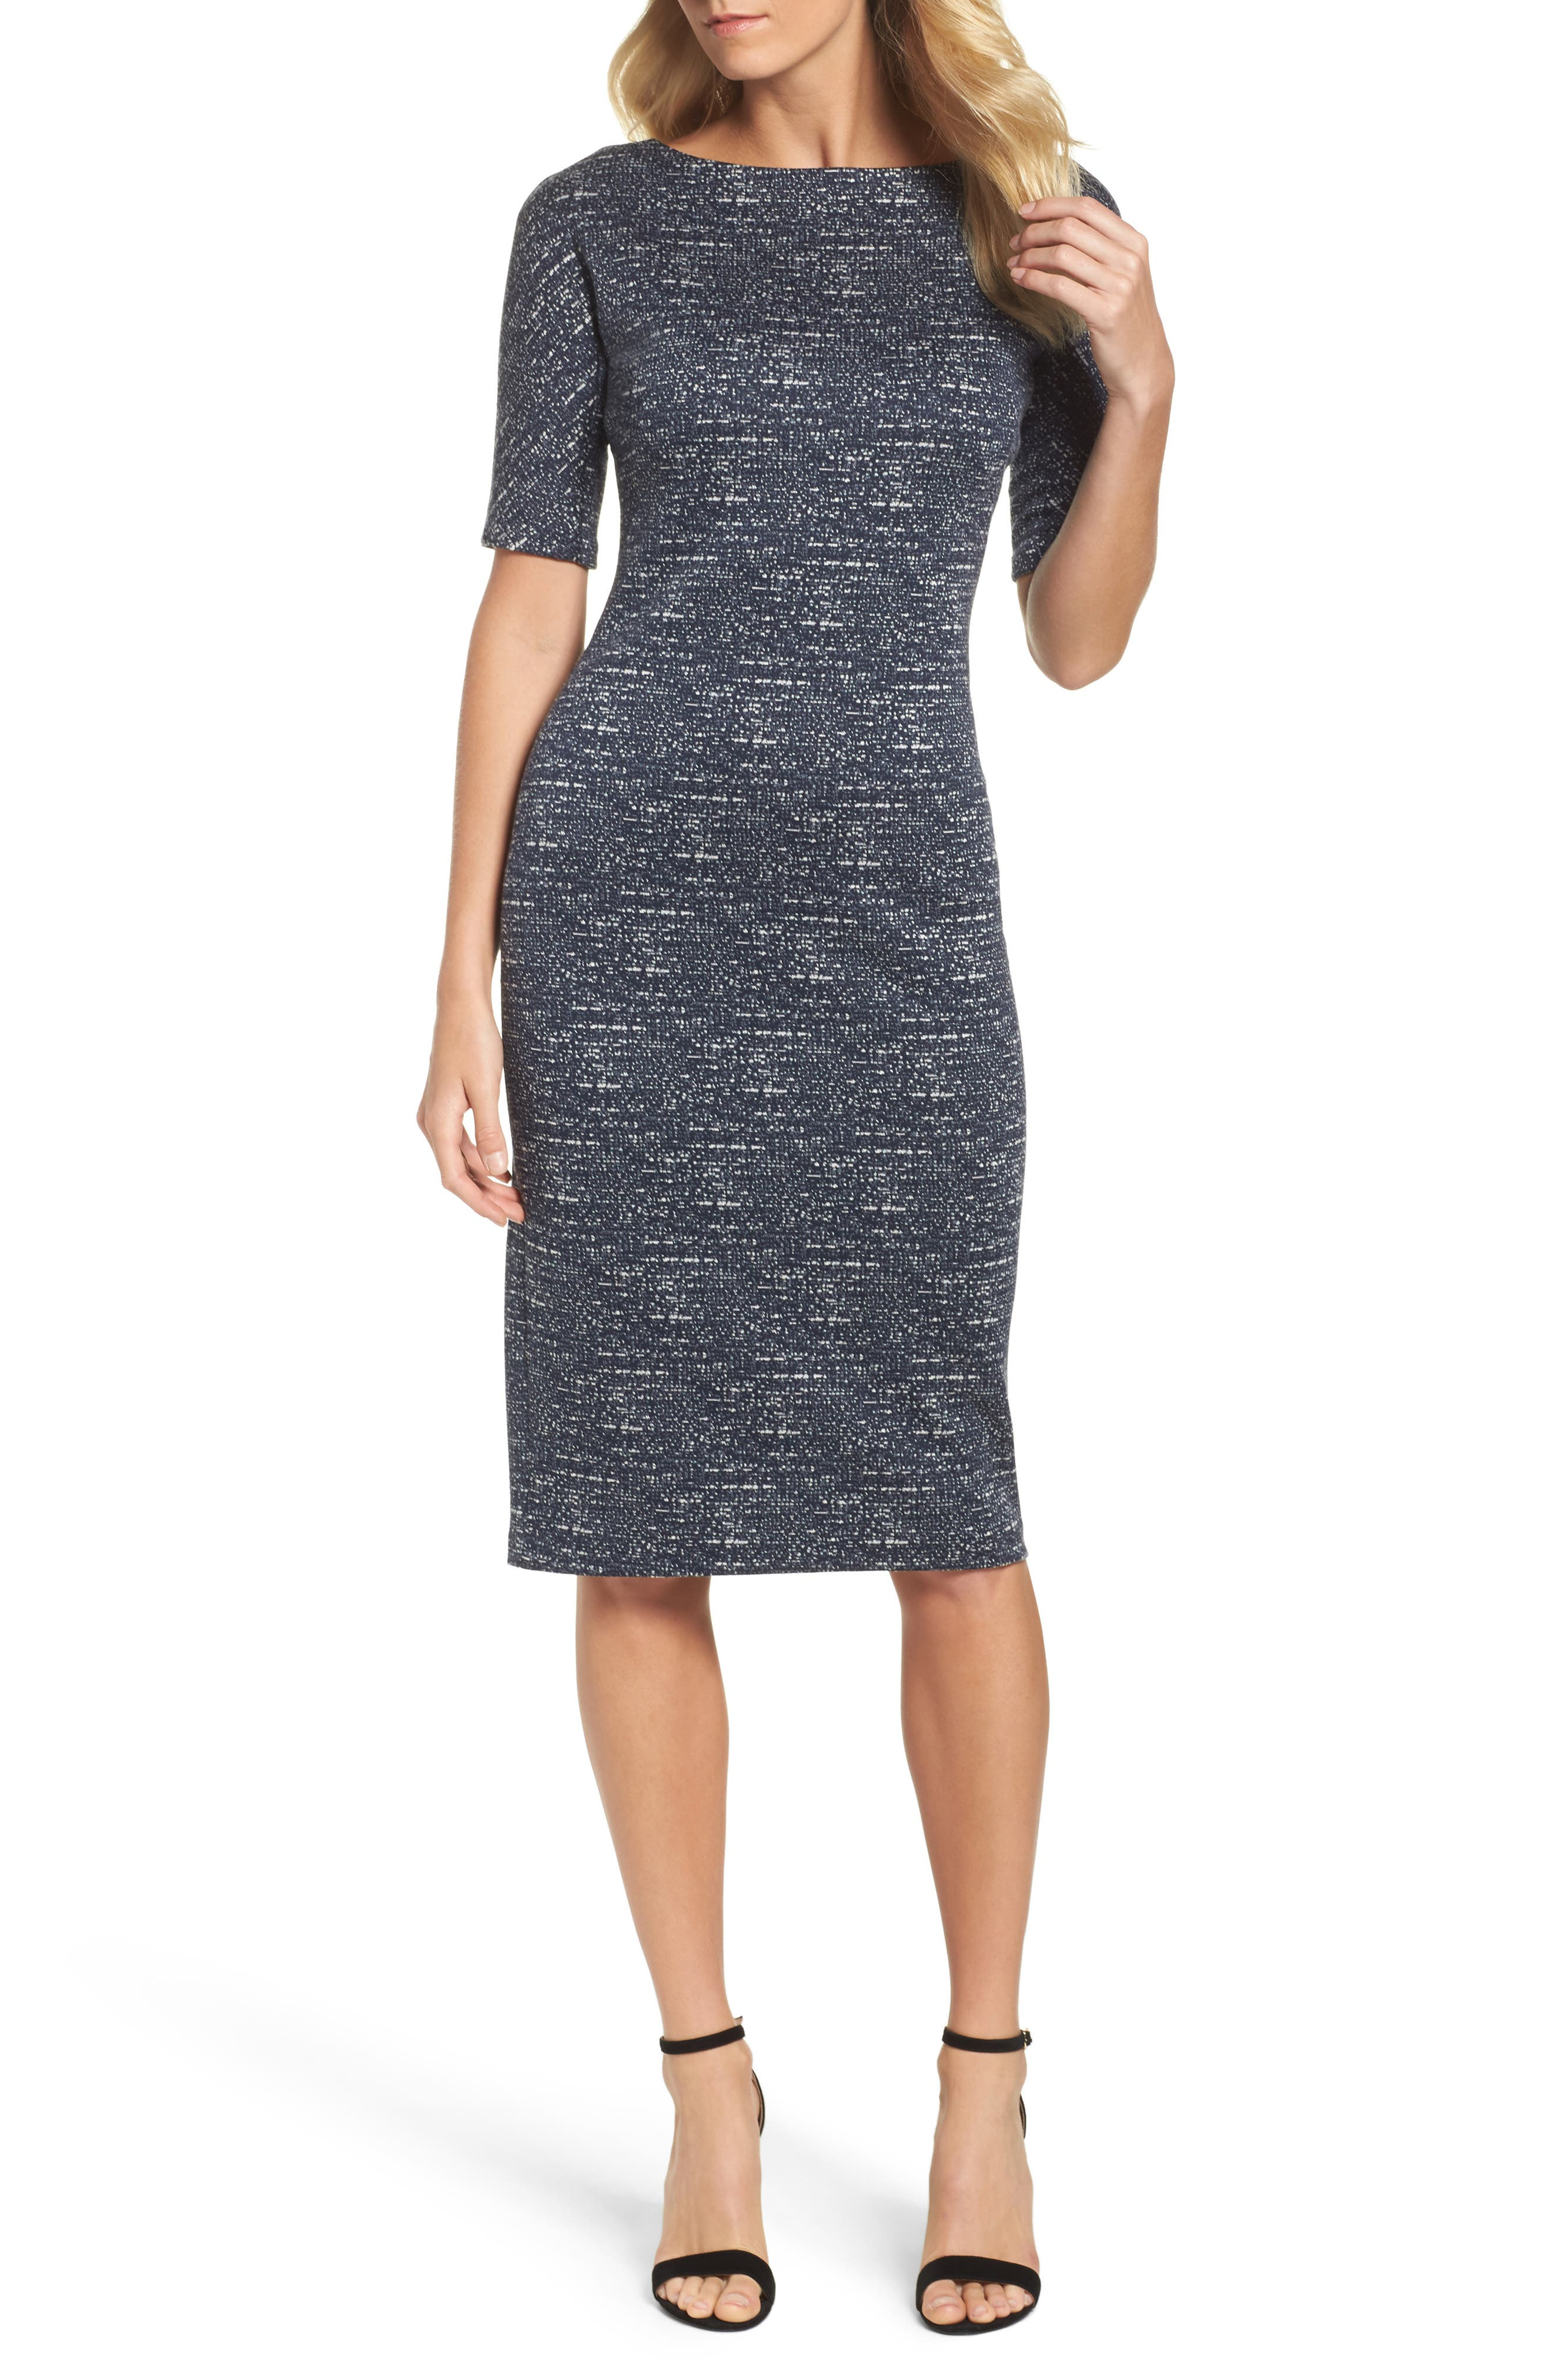 Alternate Image 1 Selected - Maggy London Sheath Dress (Regular & Petite)